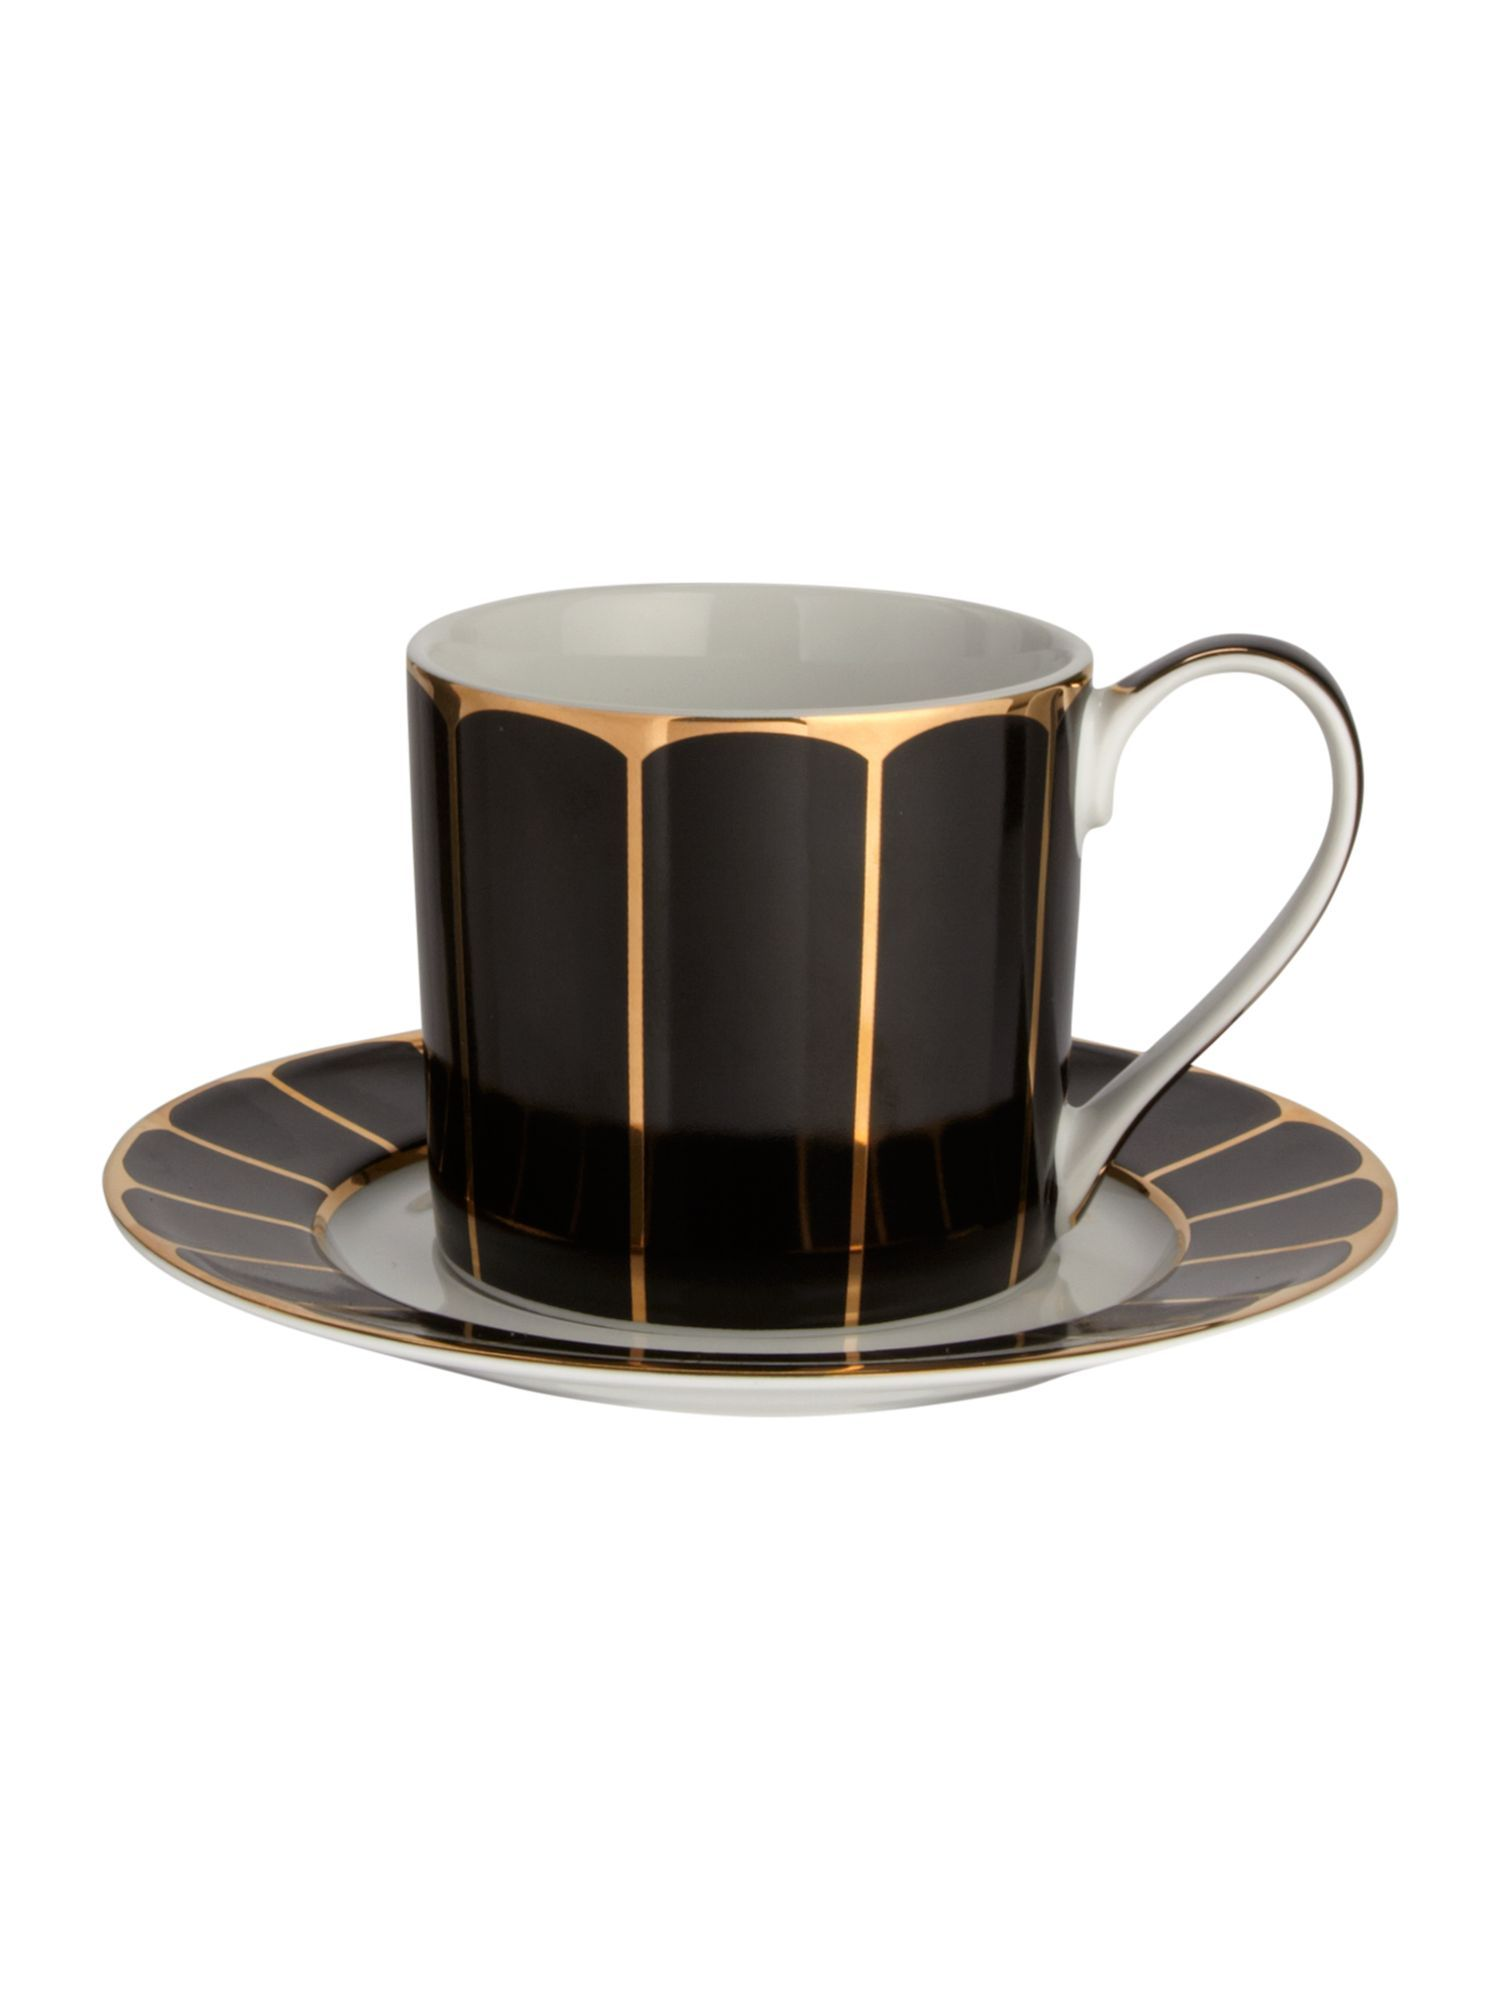 Biba Etienne Cup And Saucer House Of Fraser